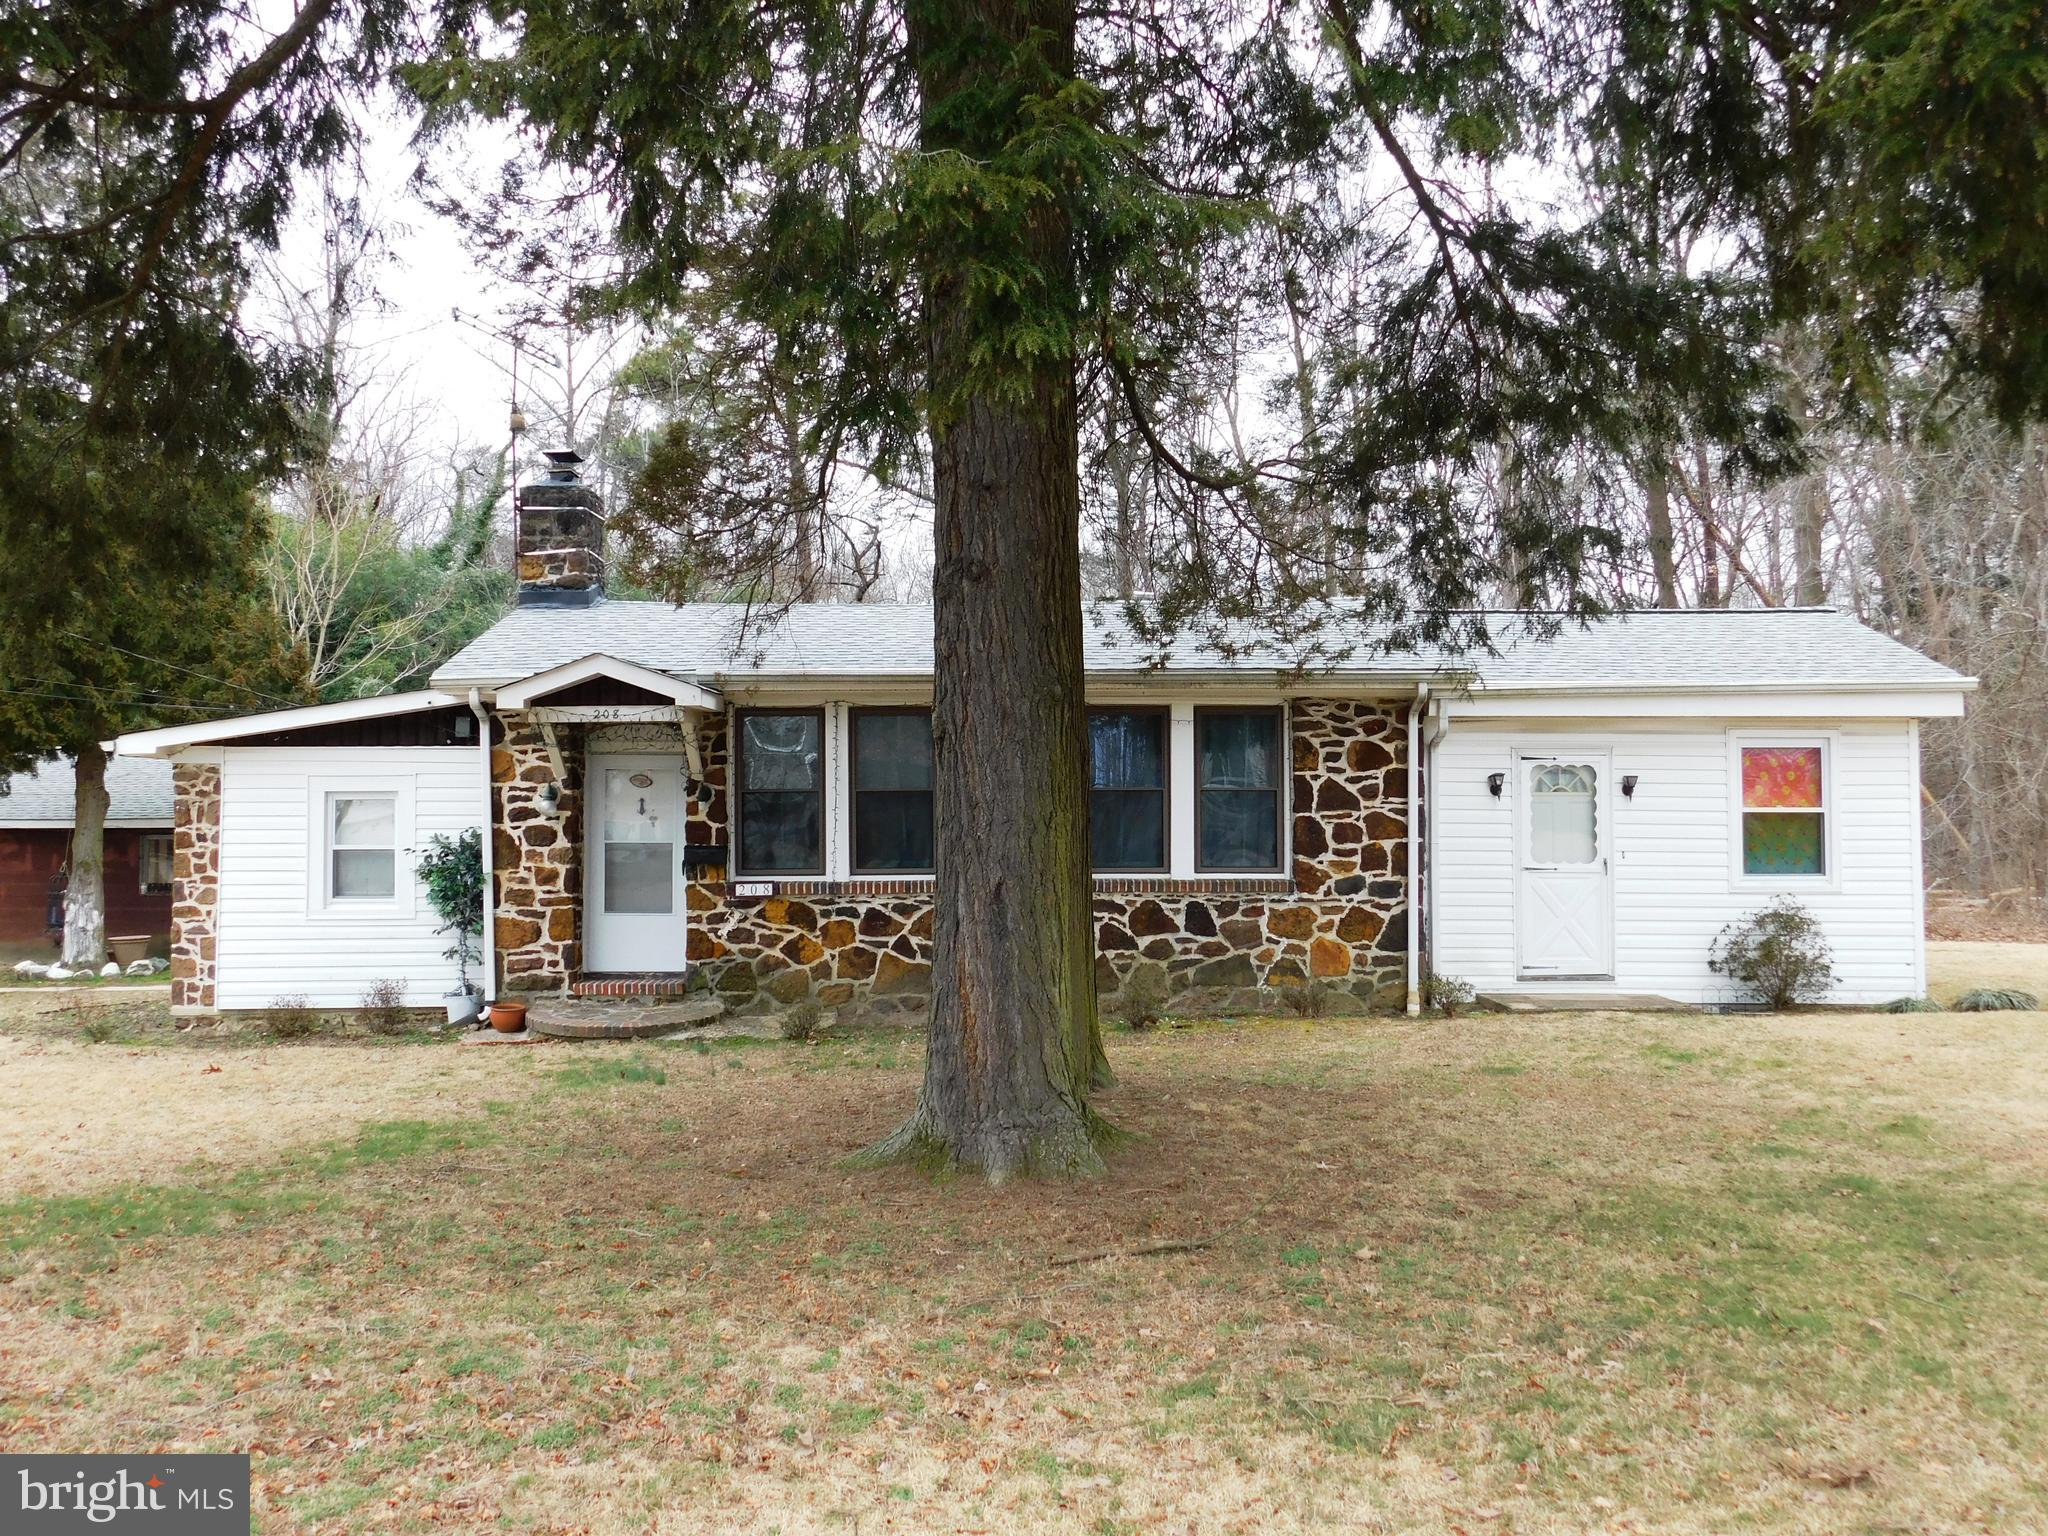 Well maintained 4 BR, 2 Full bath very large (2212 SF) rancher on one of the largest lots (2.38 A) in Barrington with central air and two car garage !!  Many updates and improvements including: Addition was built in 1980,  New siding (2019), New roof (2018), New septic (2008?), Replacement windows, recent plumbing fixtures in kitchen & baths, recent countertops in kitchen.  Tenant occupied on a month to month lease & they would like to stay, ATTN investors, this is a turn key situation, excellent tenants for 4+ years.